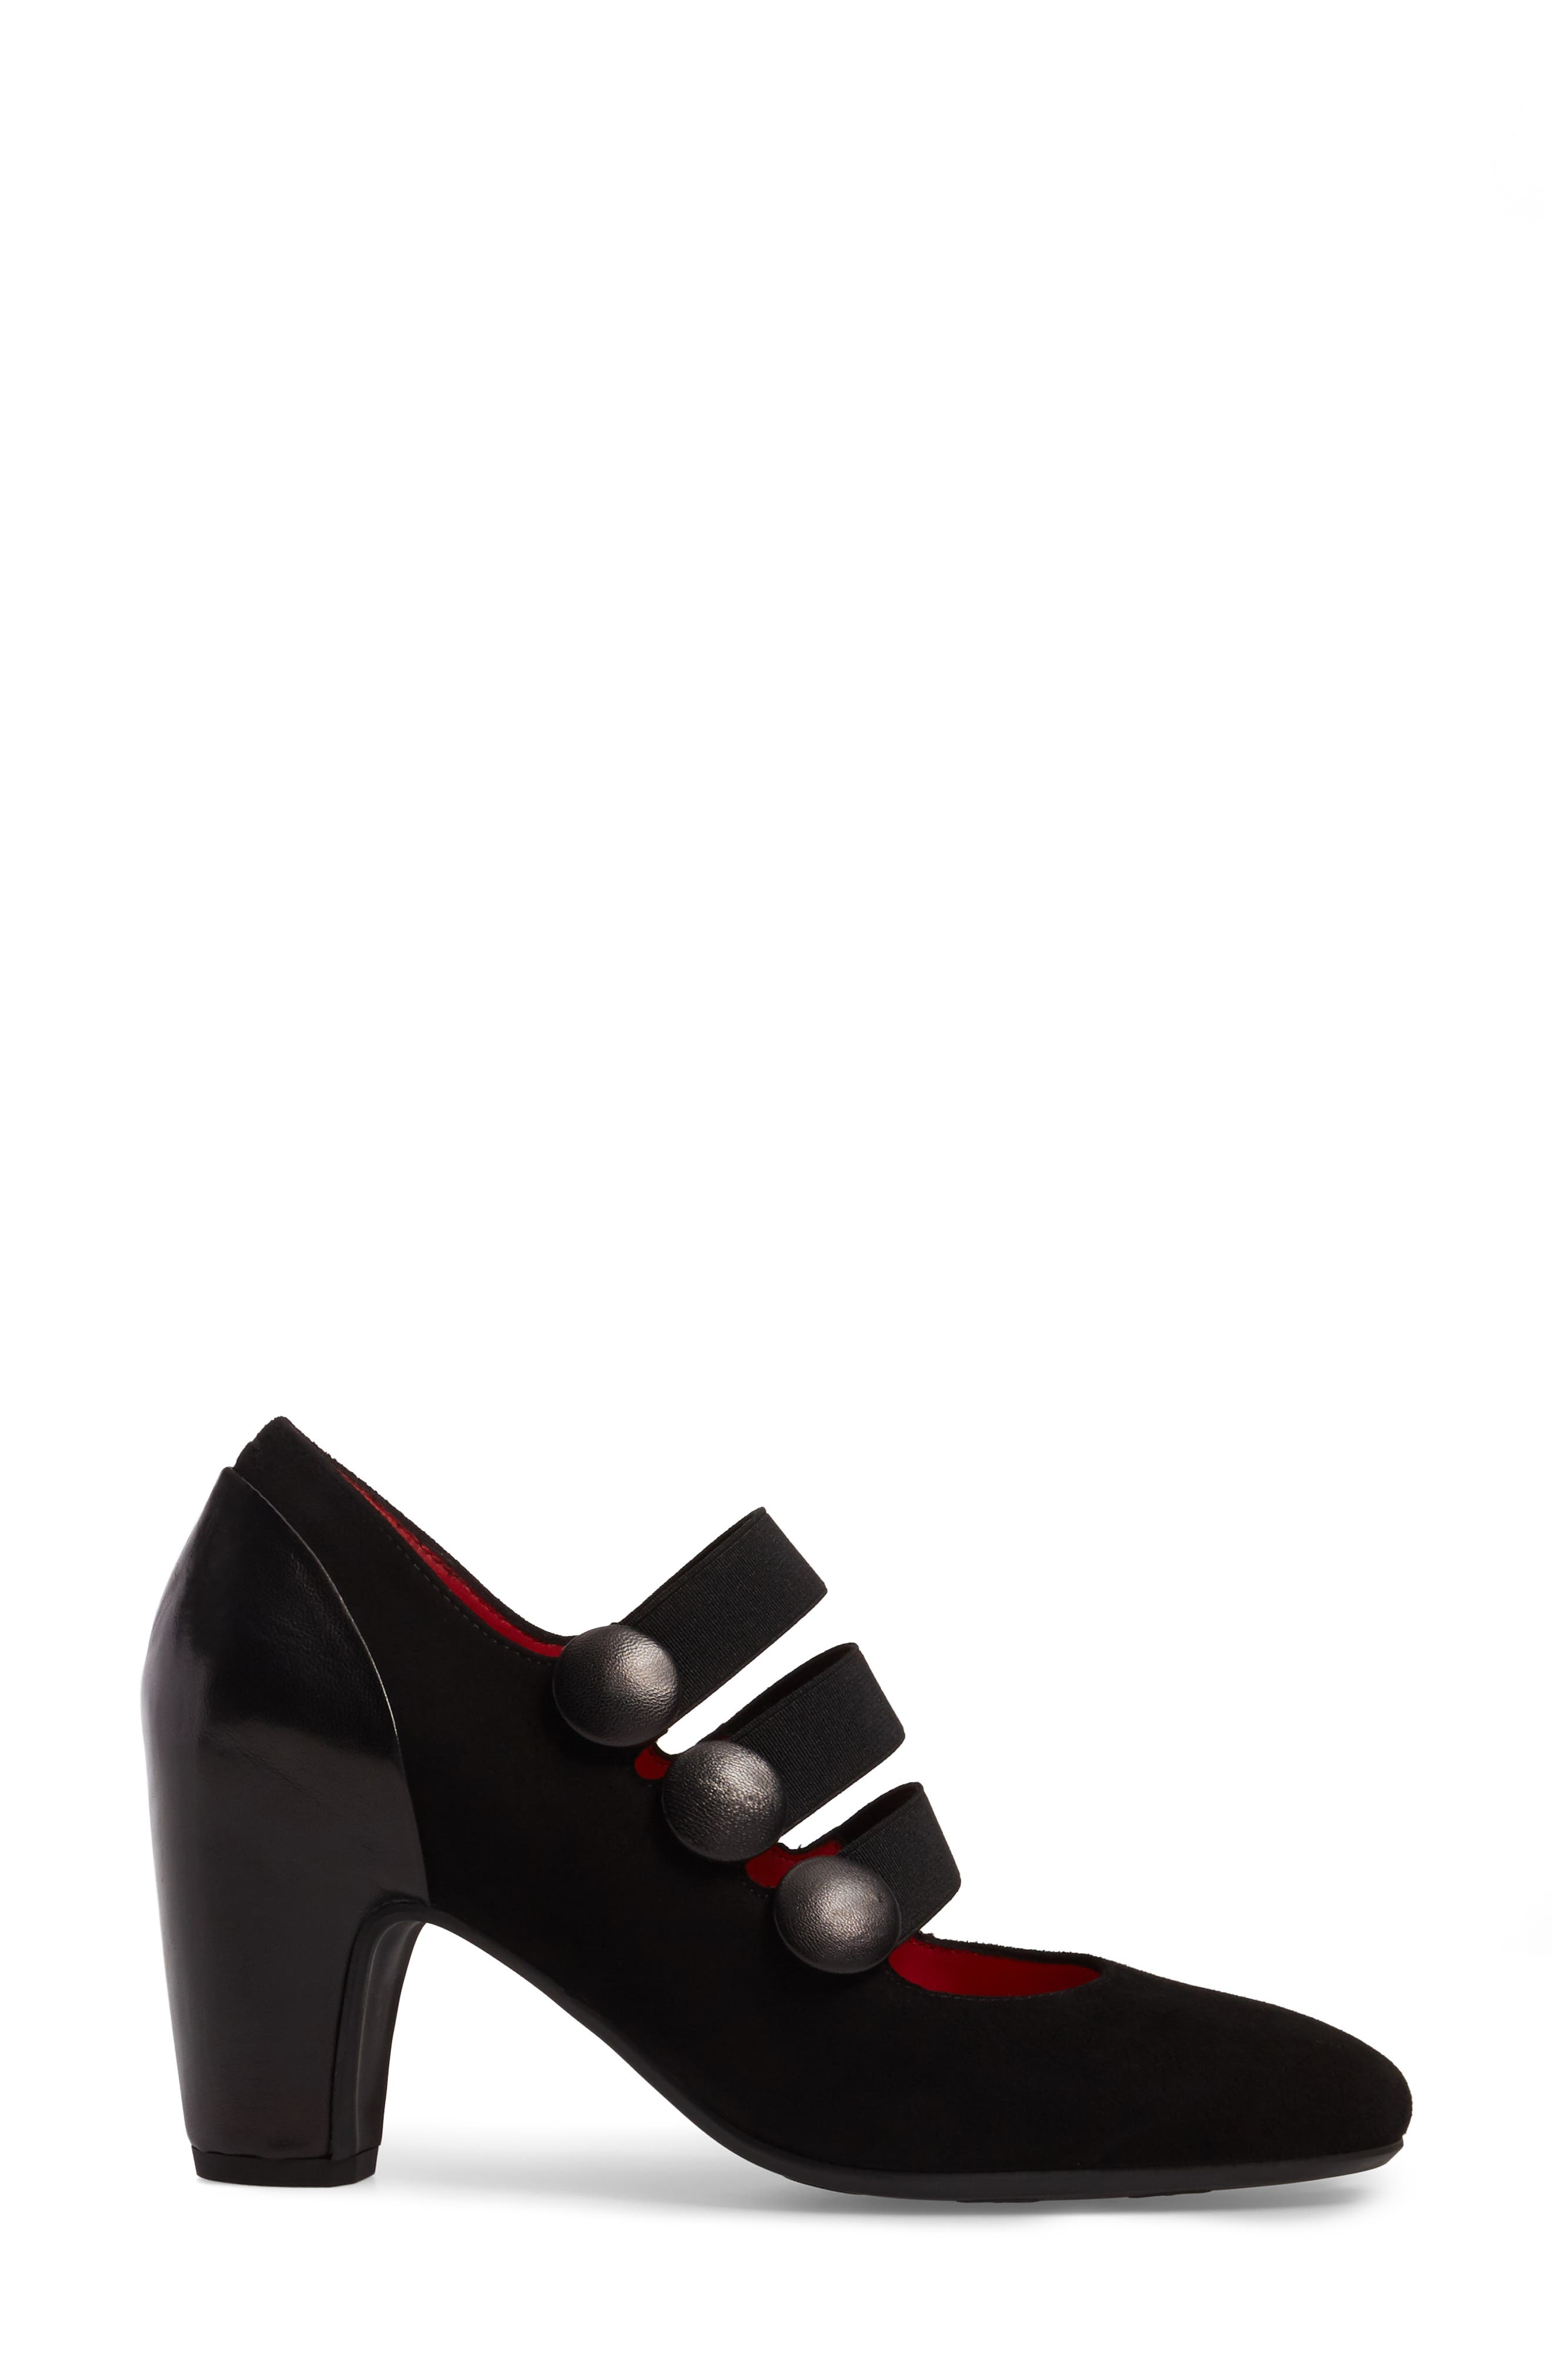 Strappy Mary Jane Pump,                             Alternate thumbnail 3, color,                             Black Suede/ Black Leather